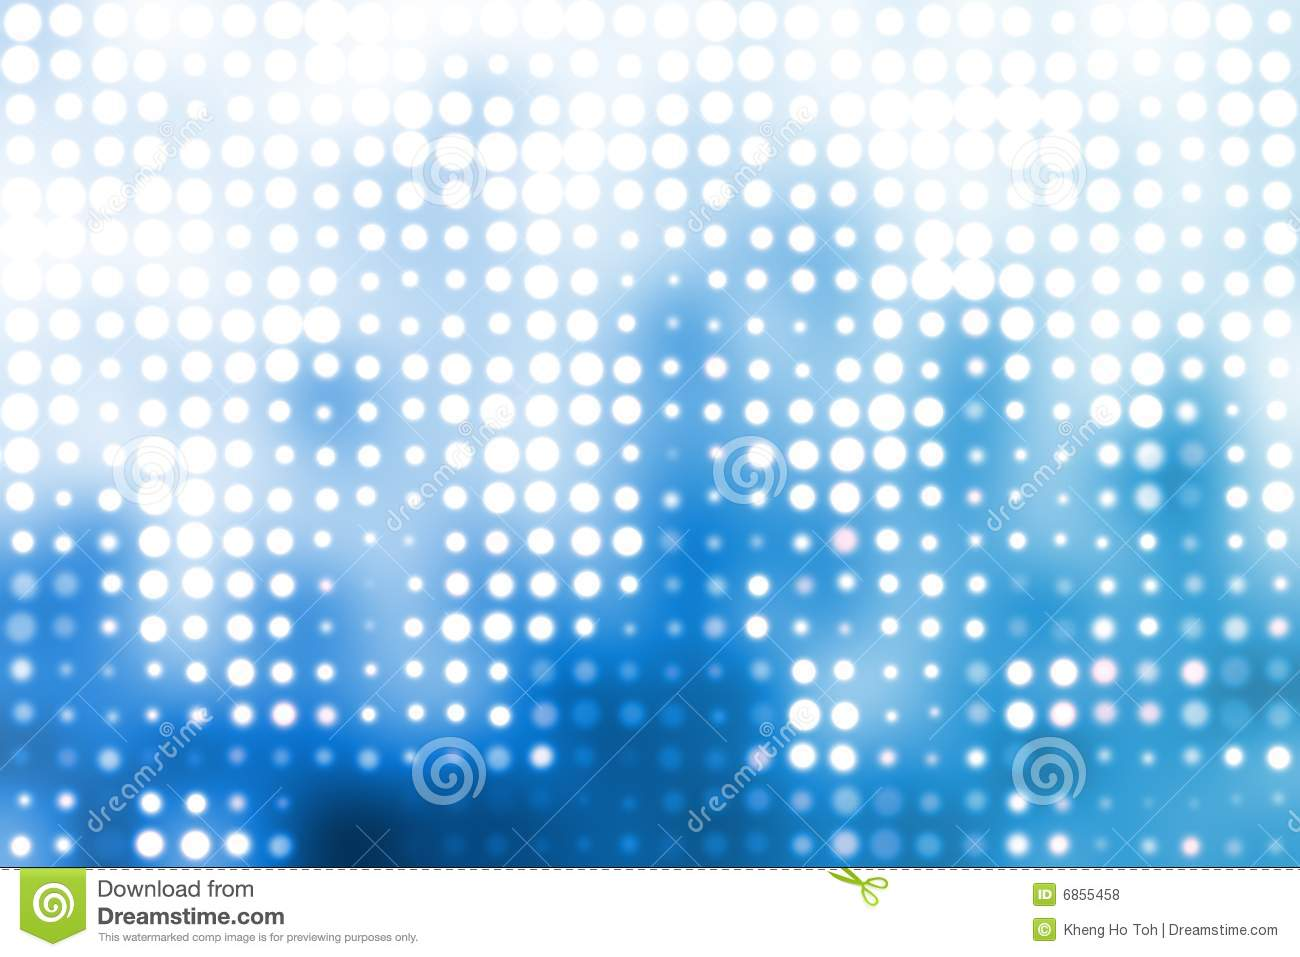 Blue And White Trendy Orbs Abstract Background Royalty Free Stock